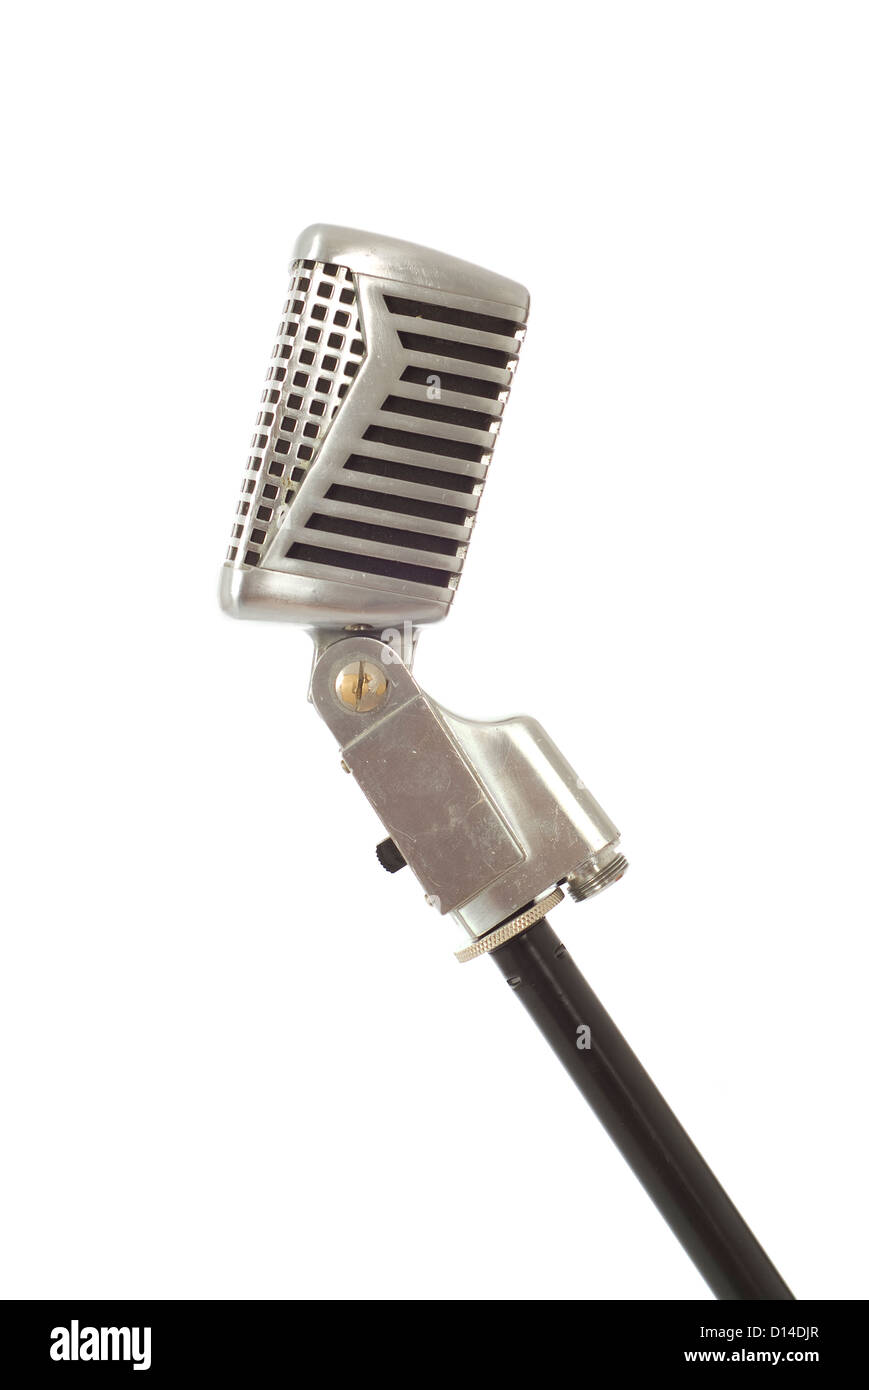 Vintage recording, announcing or singing microphone isolated on white - Stock Image